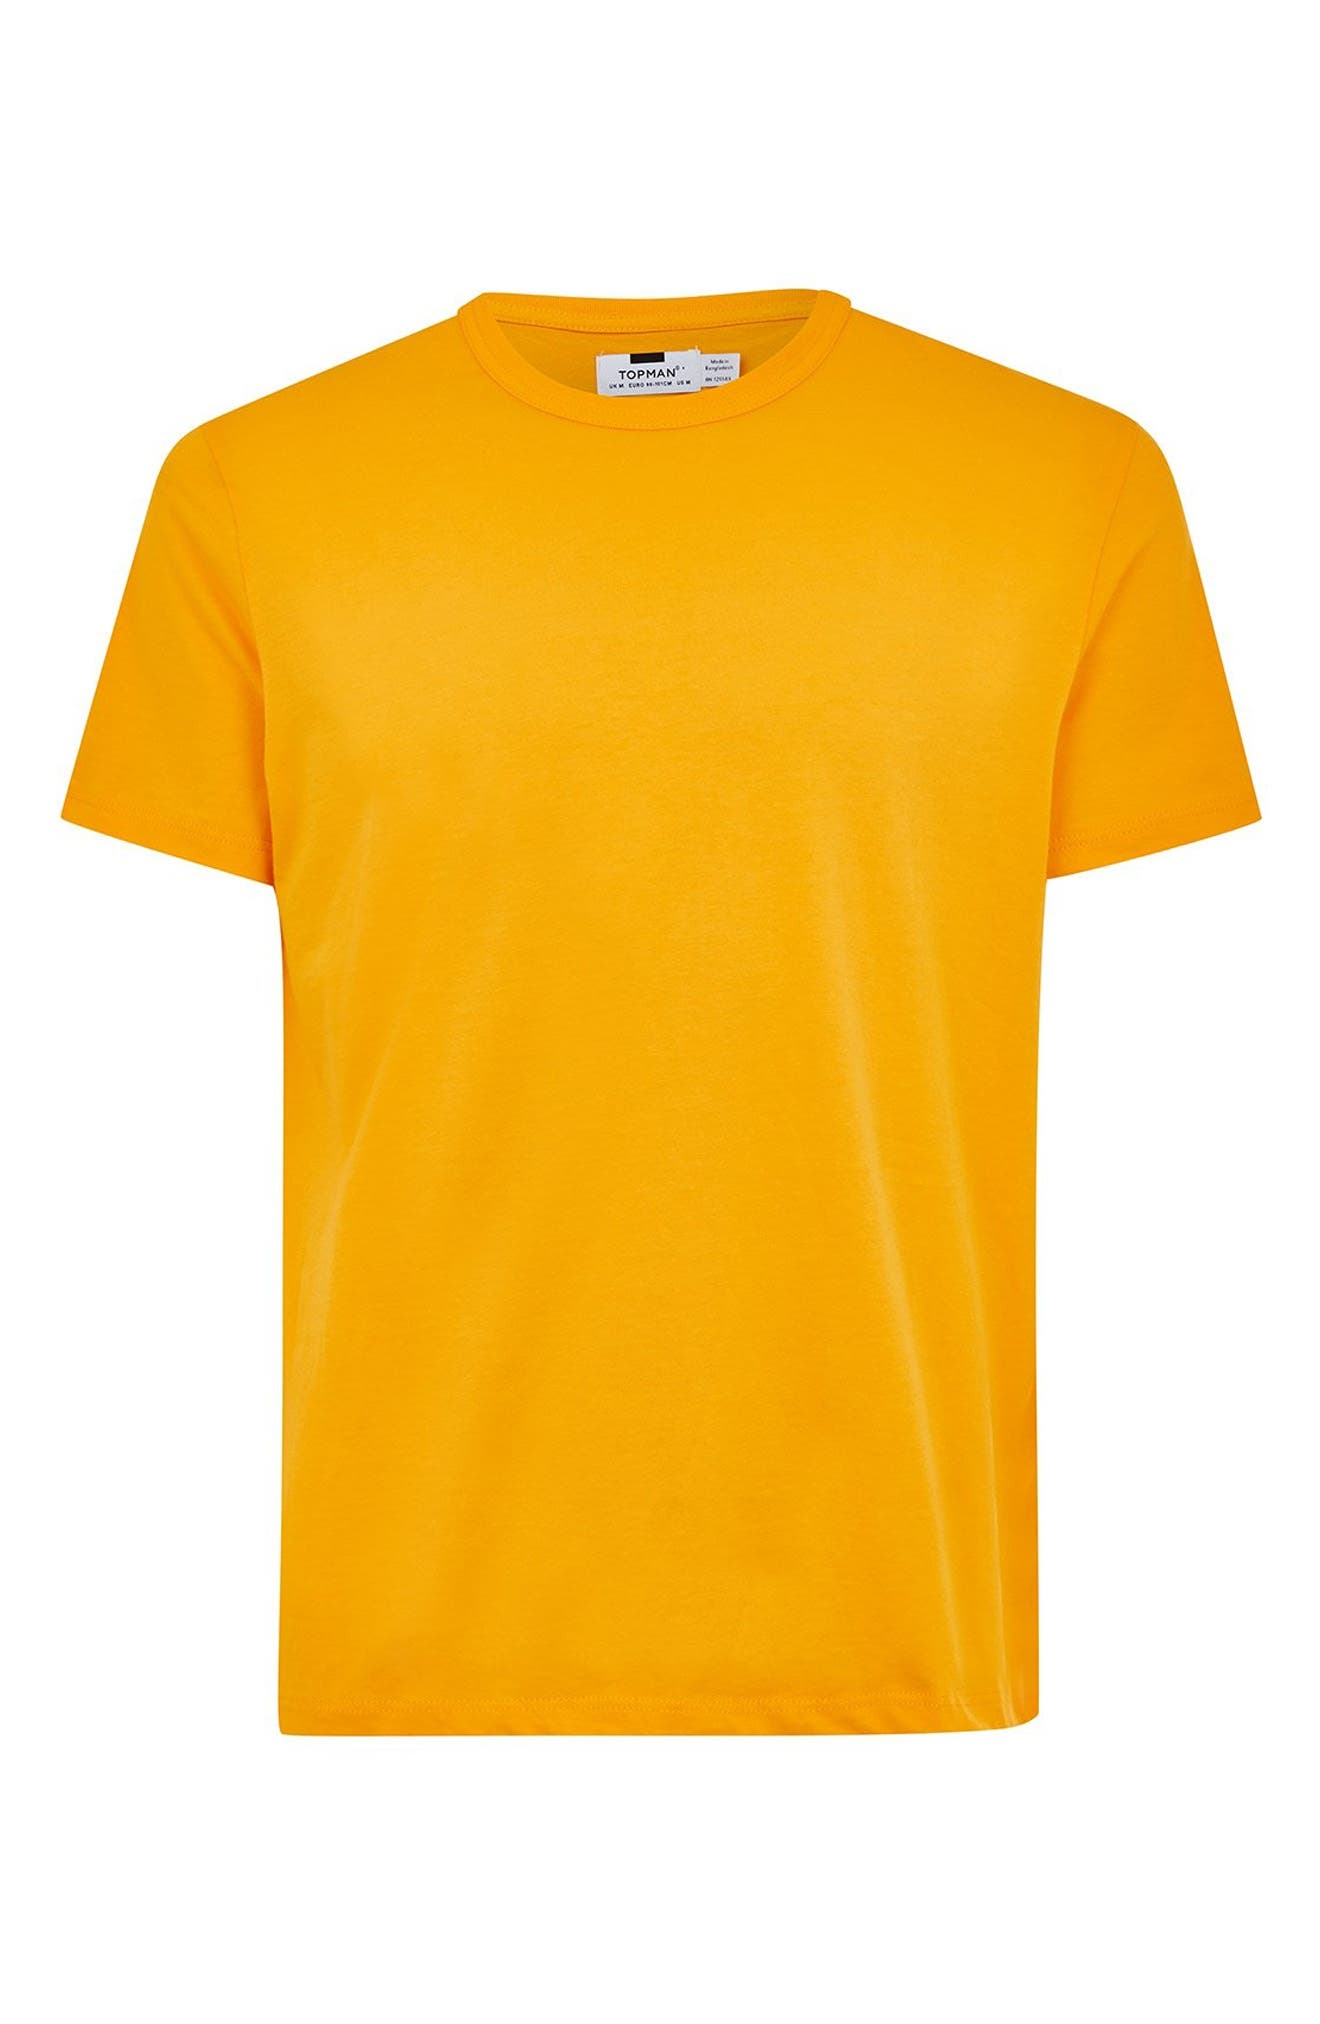 Classic Fit T-Shirt,                             Alternate thumbnail 3, color,                             Yellow